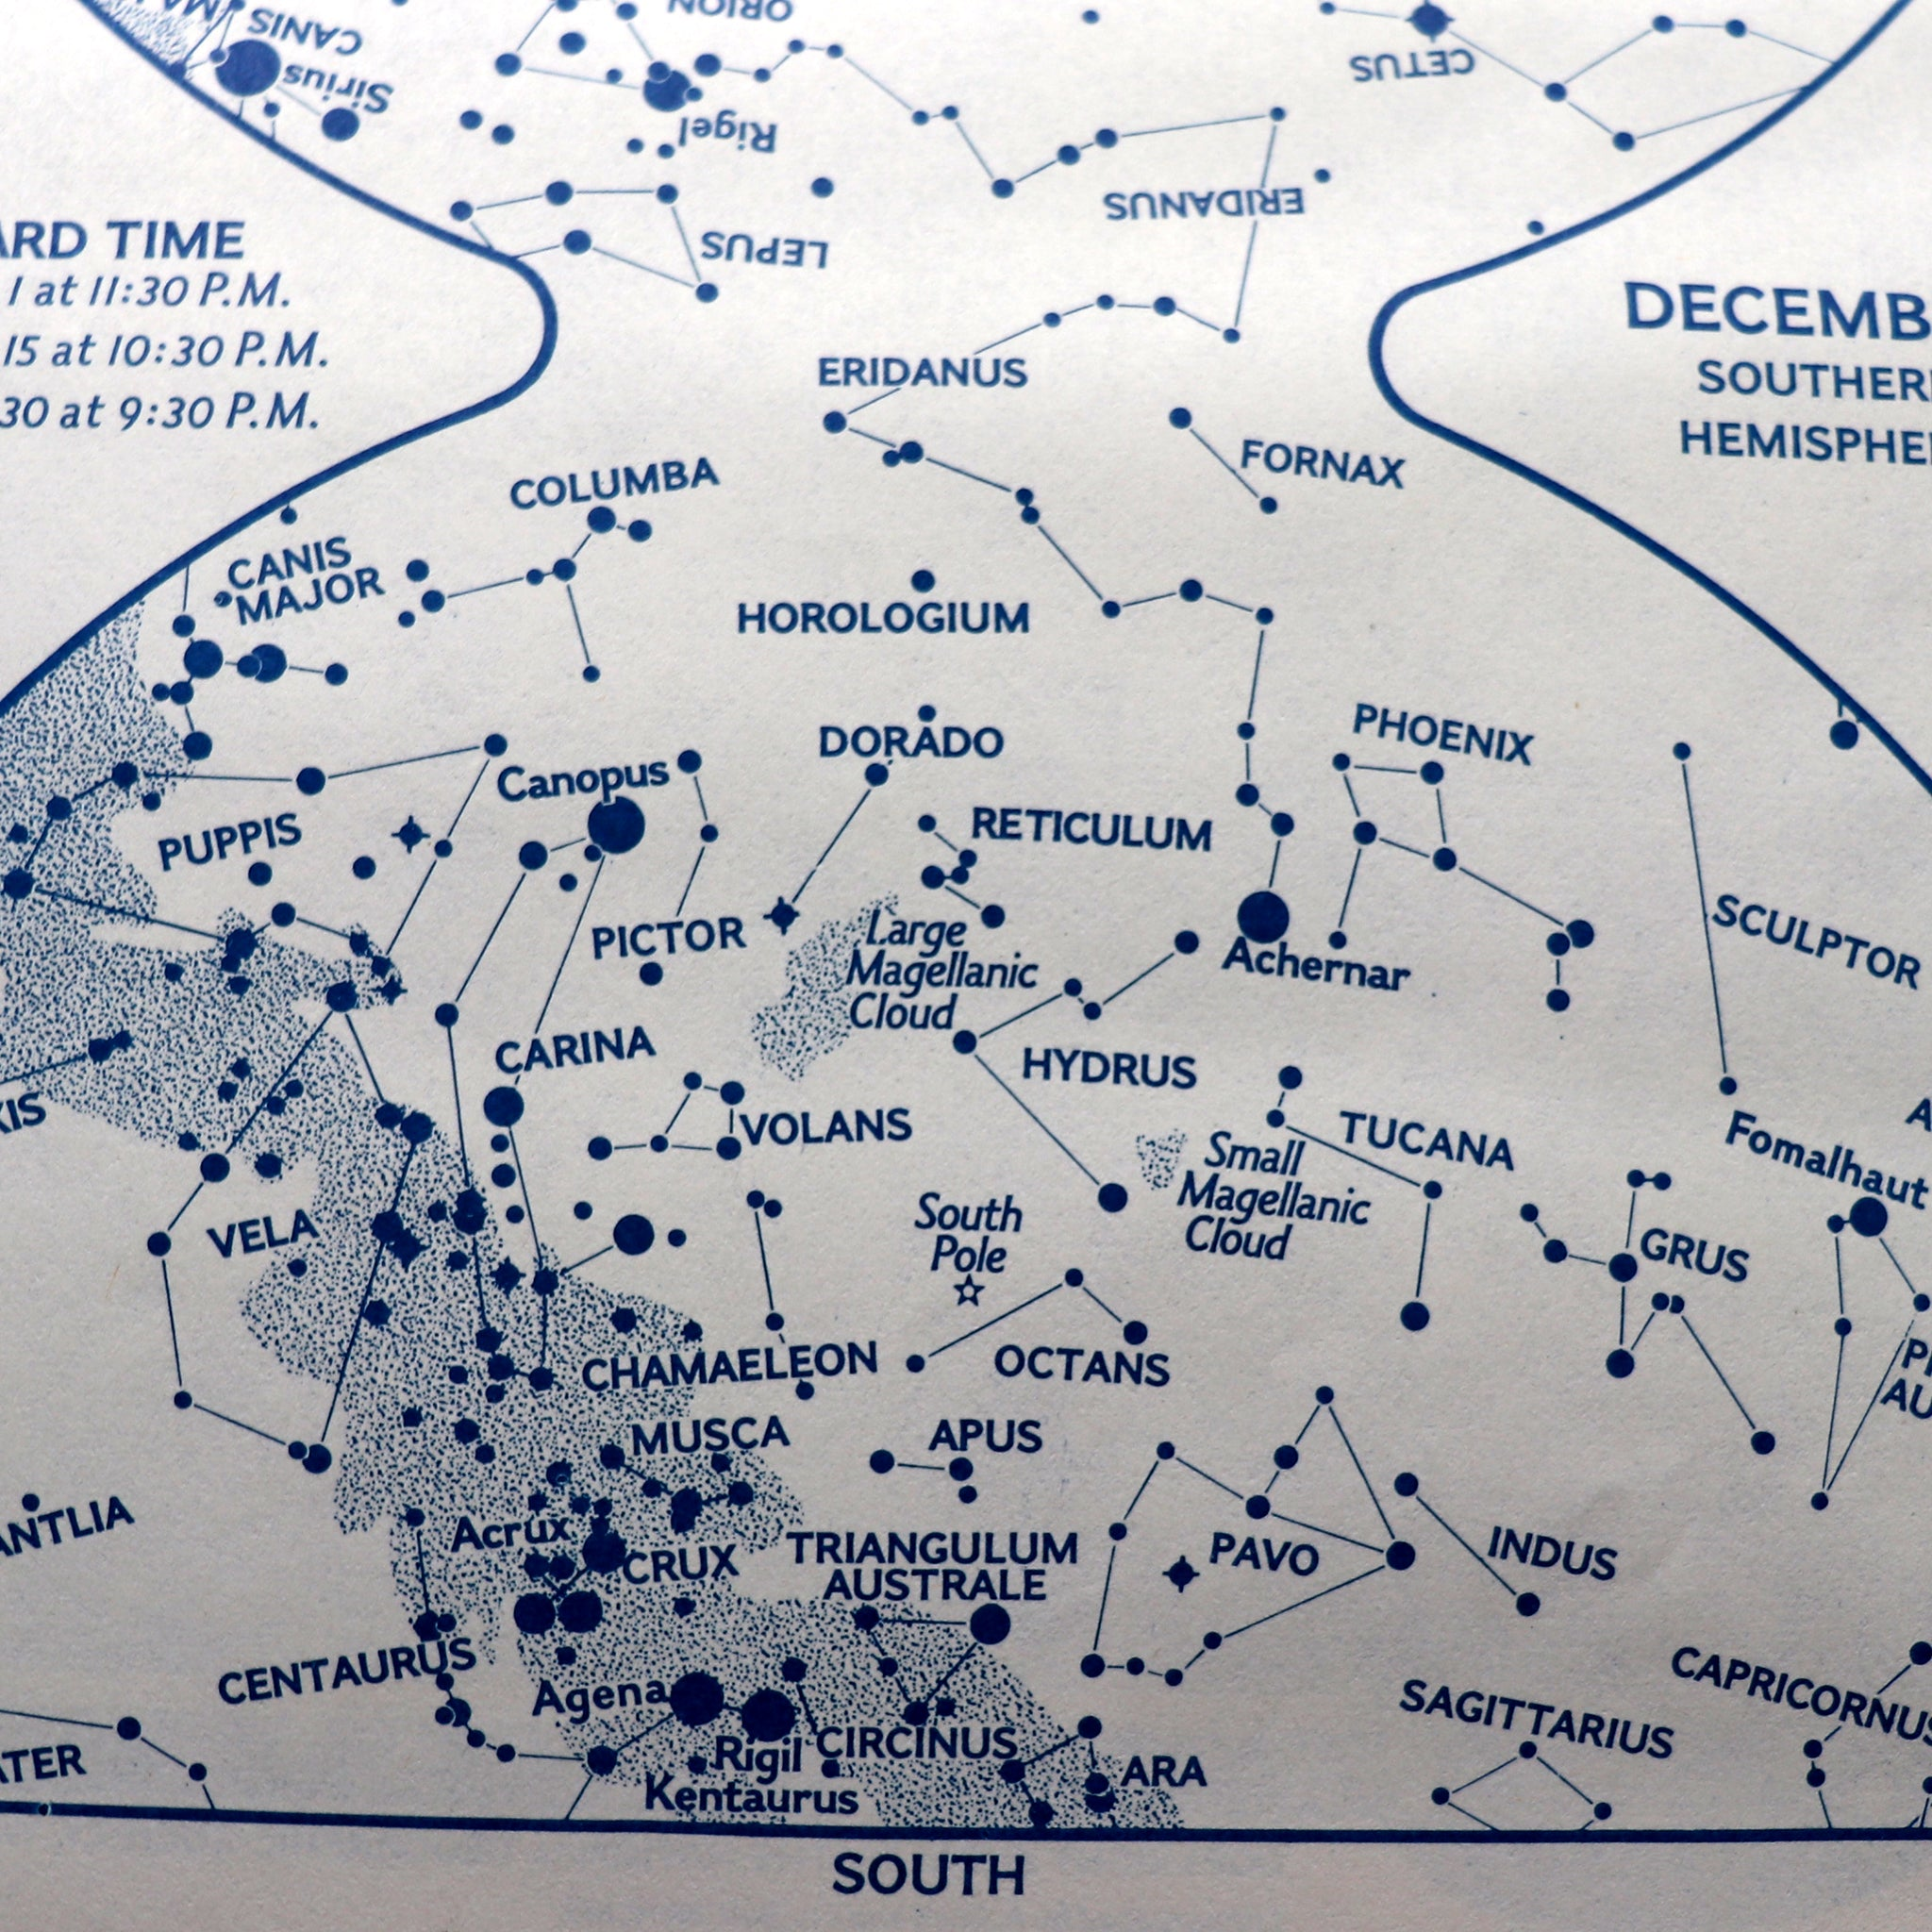 White map of heavens featuring stars and constellations